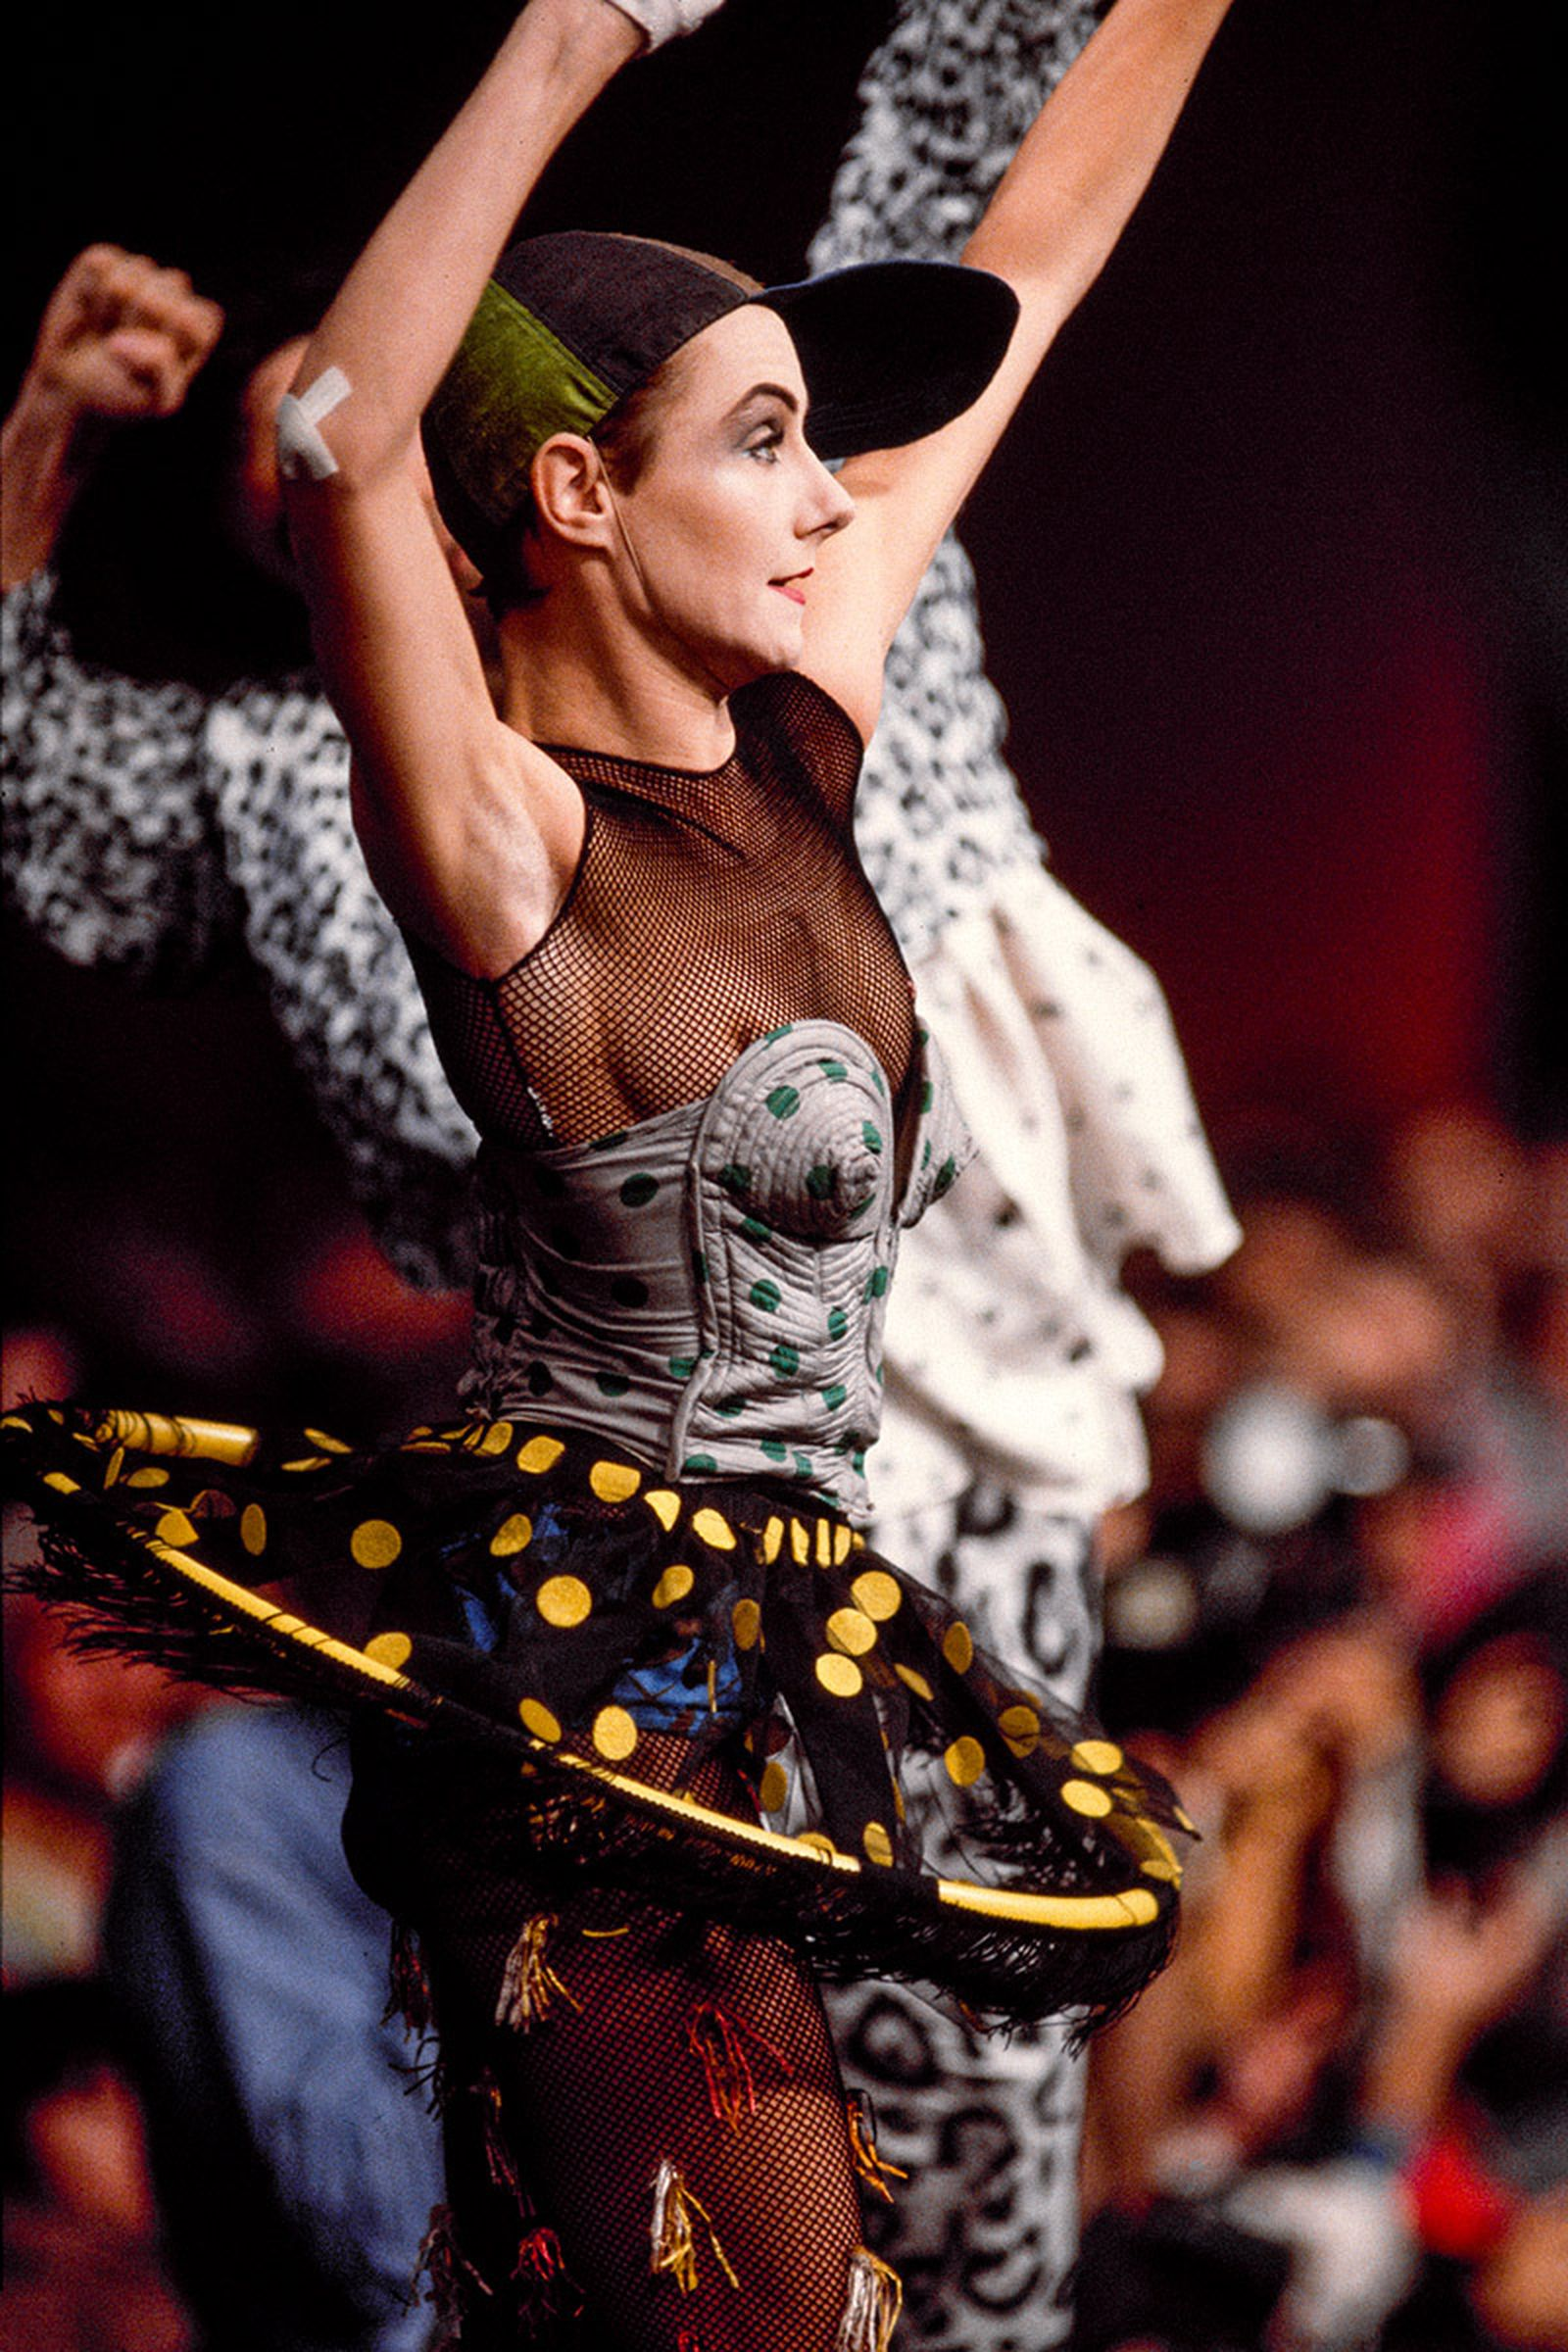 the-12-fashion-shows-that-changed-mens-fashion-jean-paul-gaultier-02